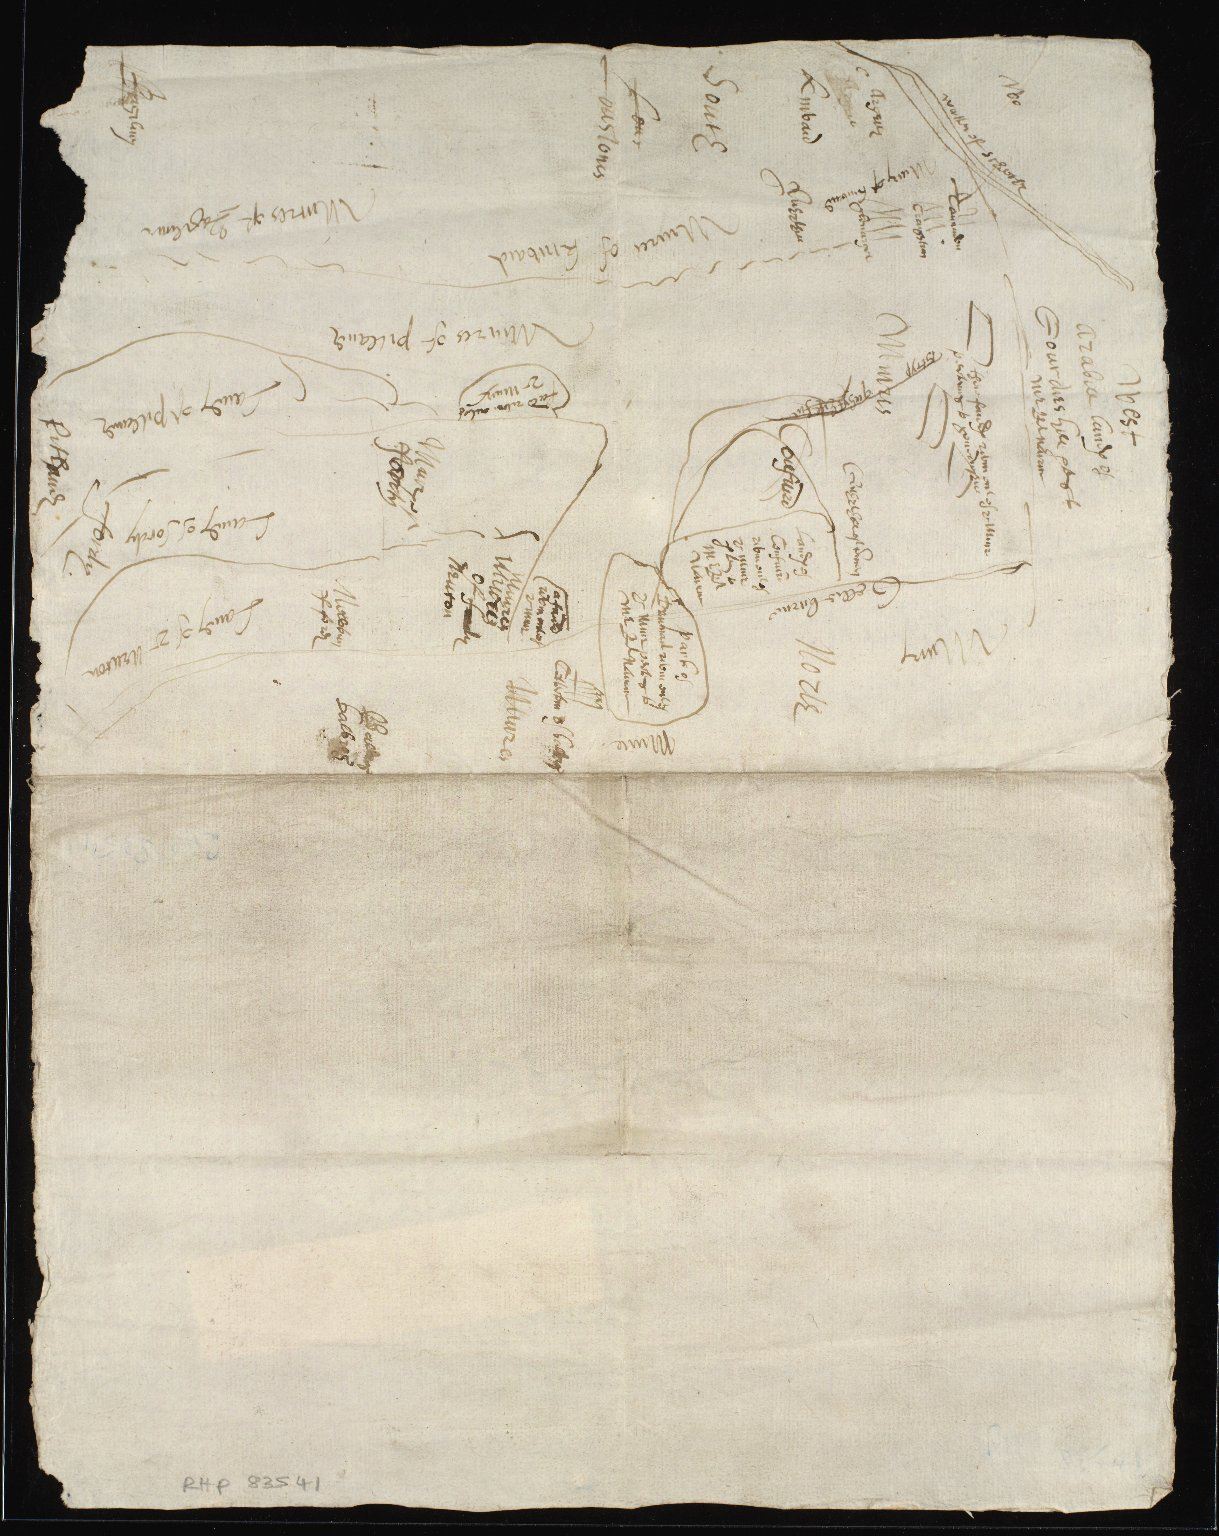 [Sketch plan of muirs of Newton, Cowfuird, Fordy, Pitlandie and Kinvaid] [1 of 1]